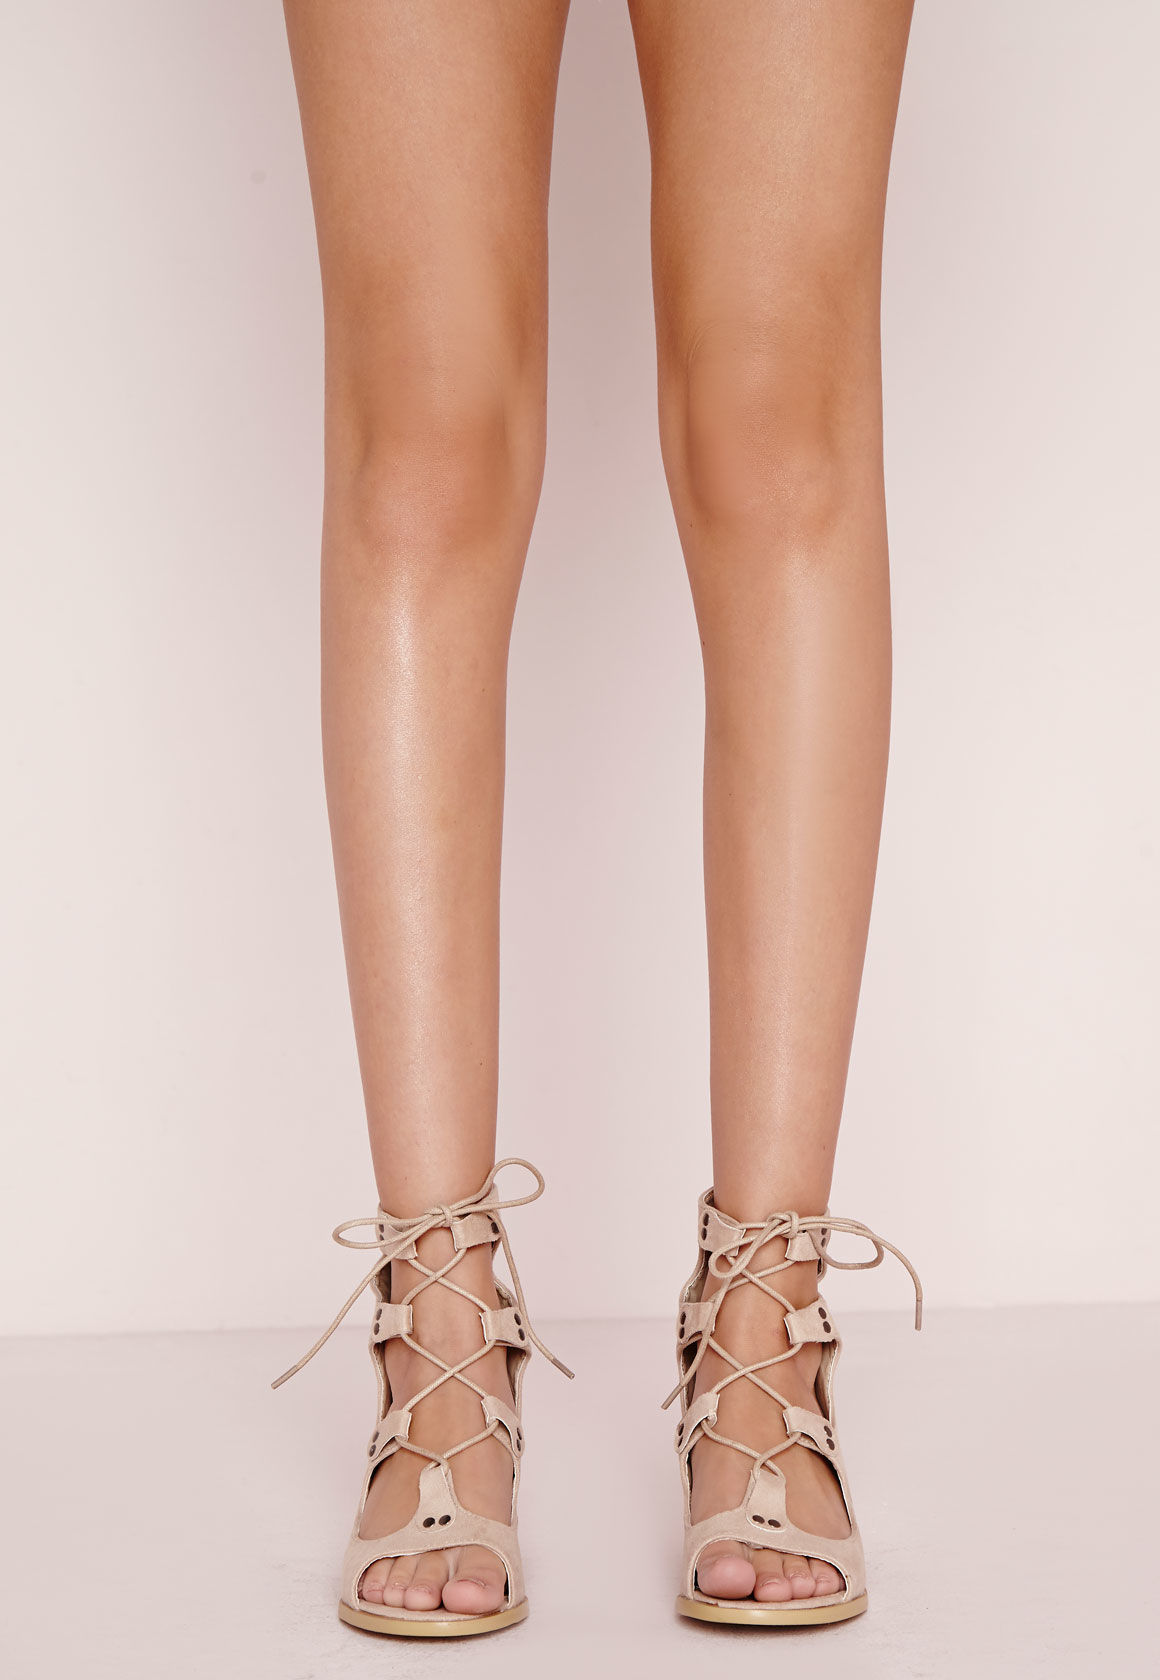 Lyst - Missguided Block Heel Gladiator Sandals Cream in Natural